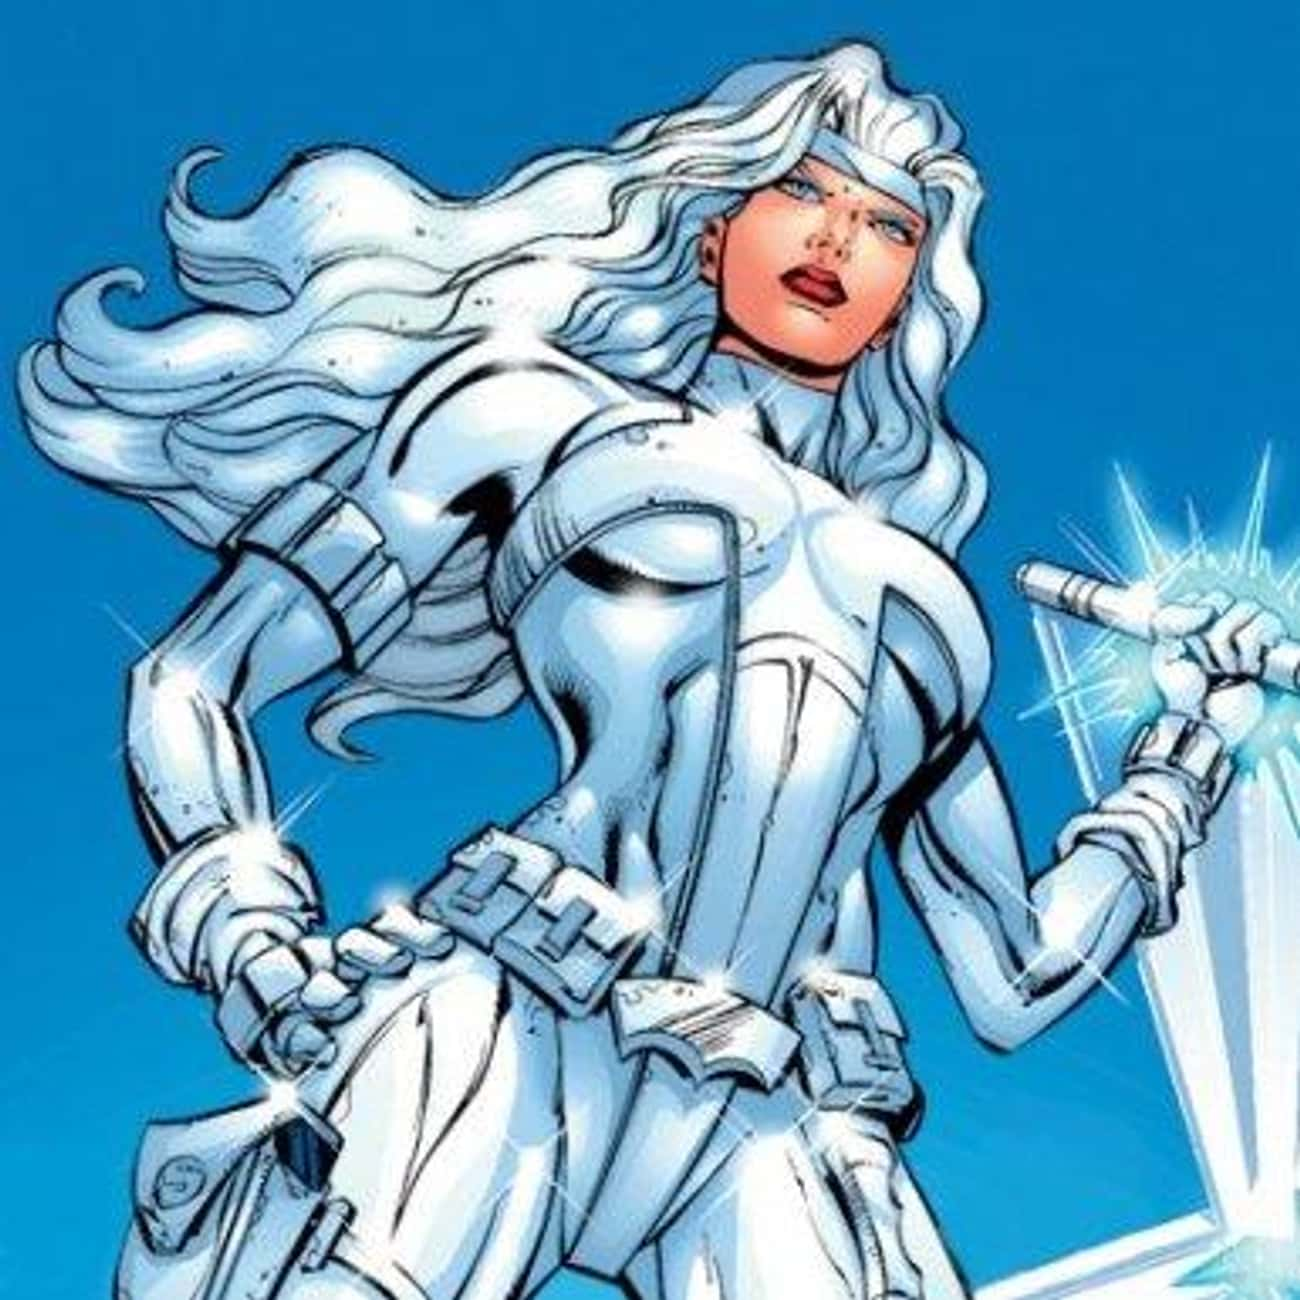 Silver Sable is listed (or ranked) 3 on the list The Best Female Superhero Team Leaders